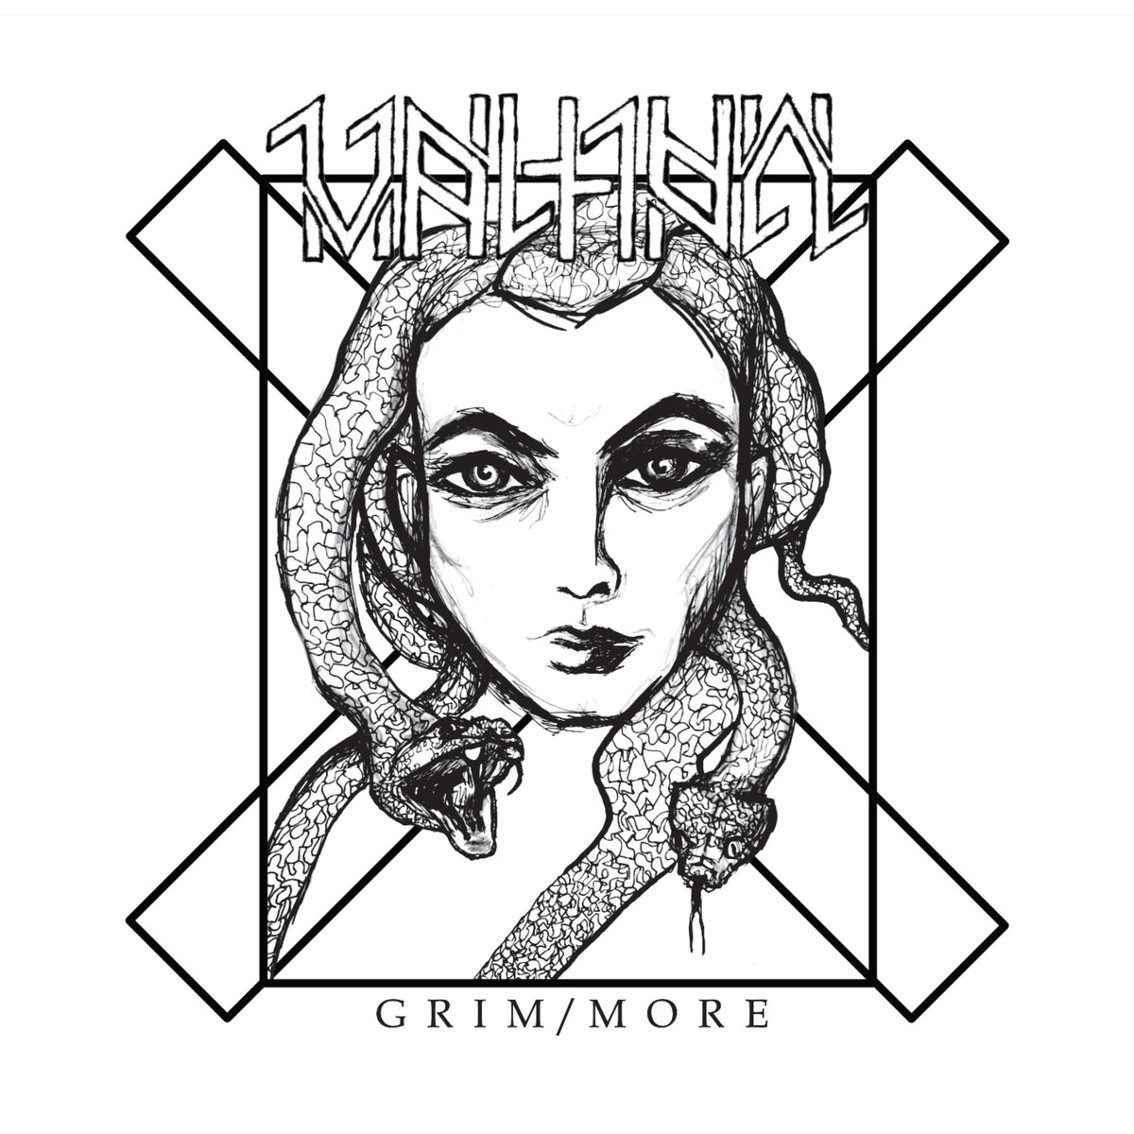 Stream new Valhall album'Grim/More' exclusively on Side-Line.com !